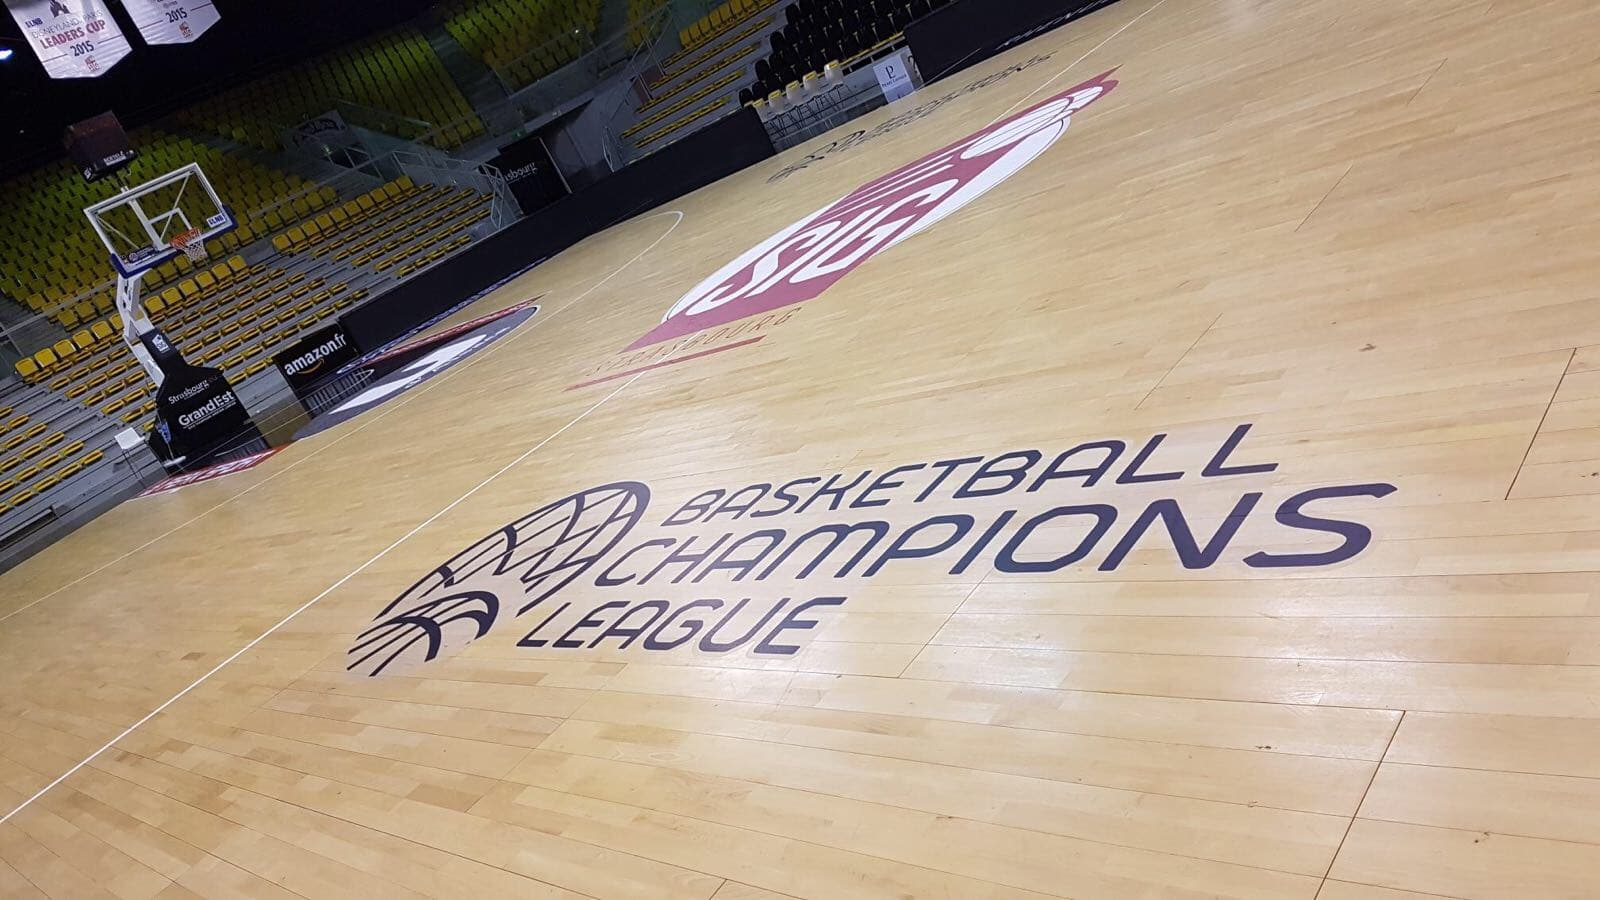 lettrage adhésif champions league basket